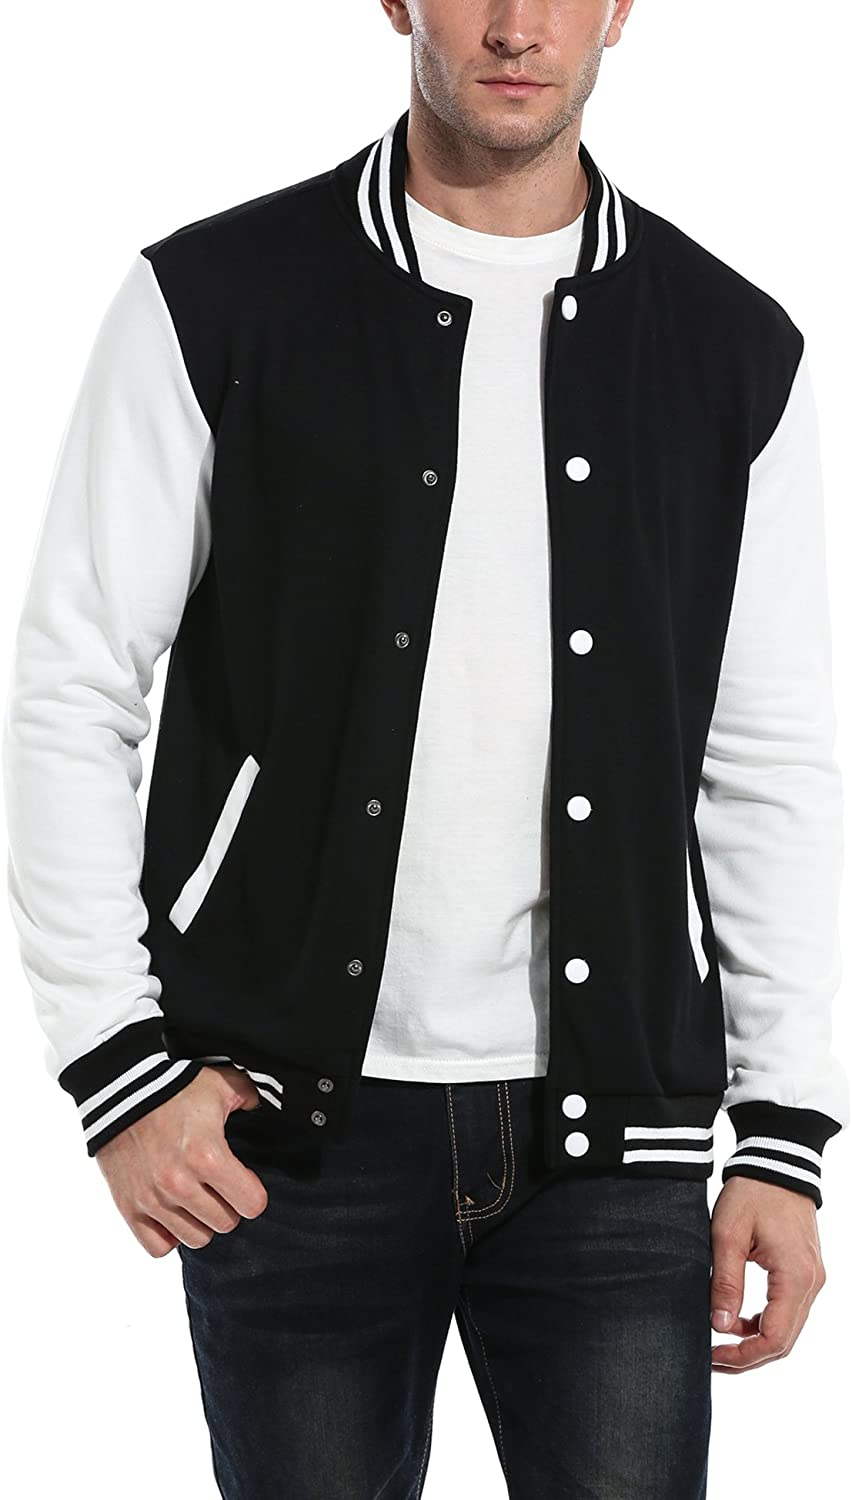 50s Men's Jackets | Greaser Jackets, Leather, Bomber, Gabardine COOFANDY Mens Slim Fit Varsity Baseball Jacket Bomber Cotton Premium Jackets $38.99 AT vintagedancer.com